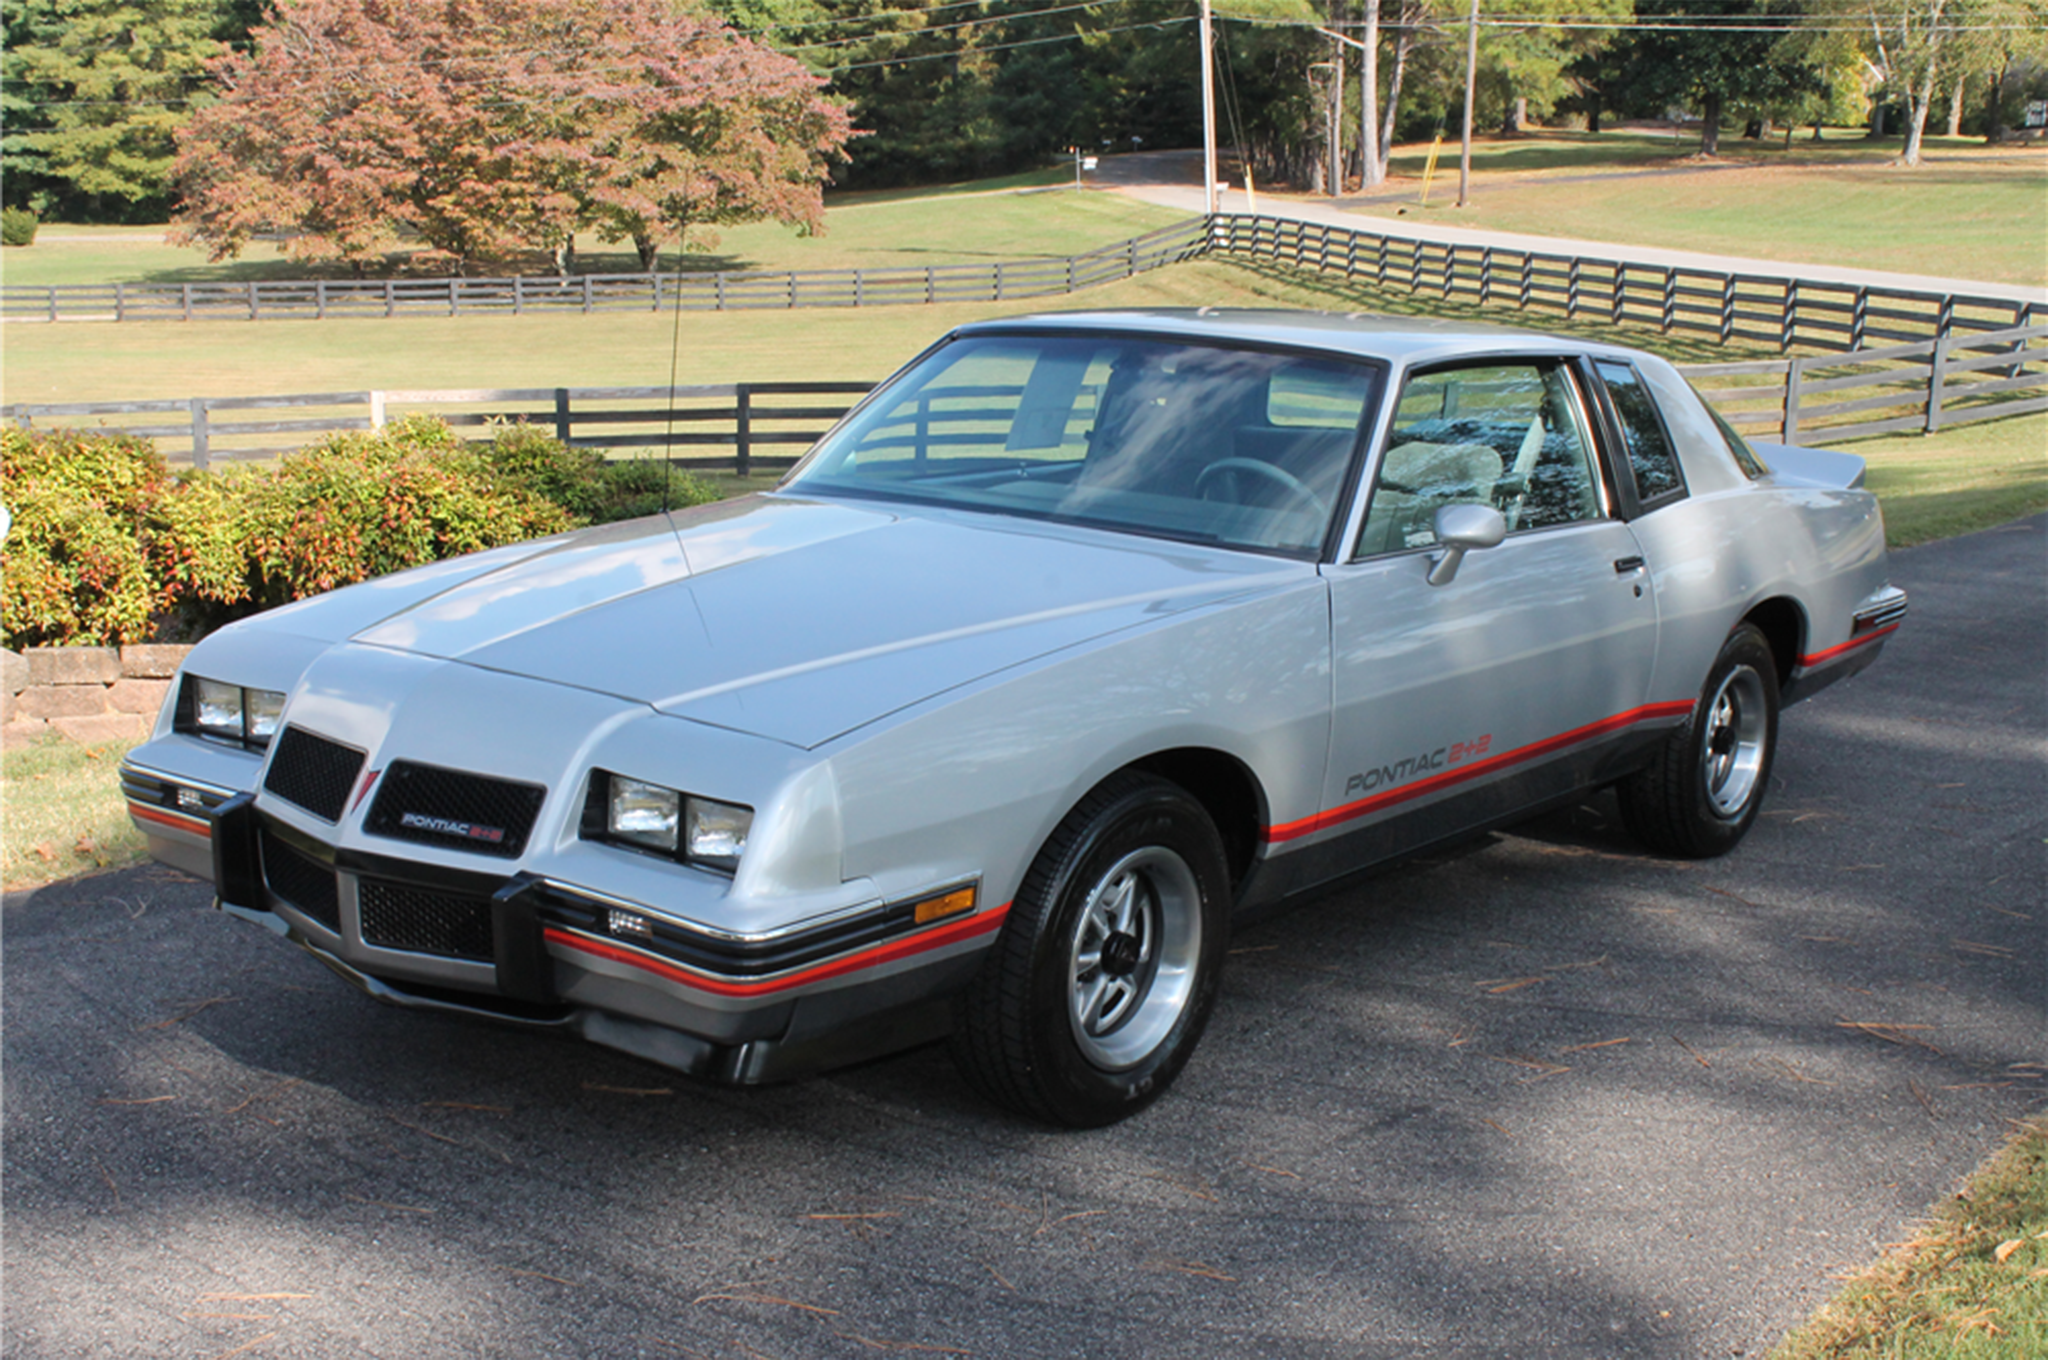 1986 Pontiac Grand Prix 22 Barrett Jackson Front Three Quarters